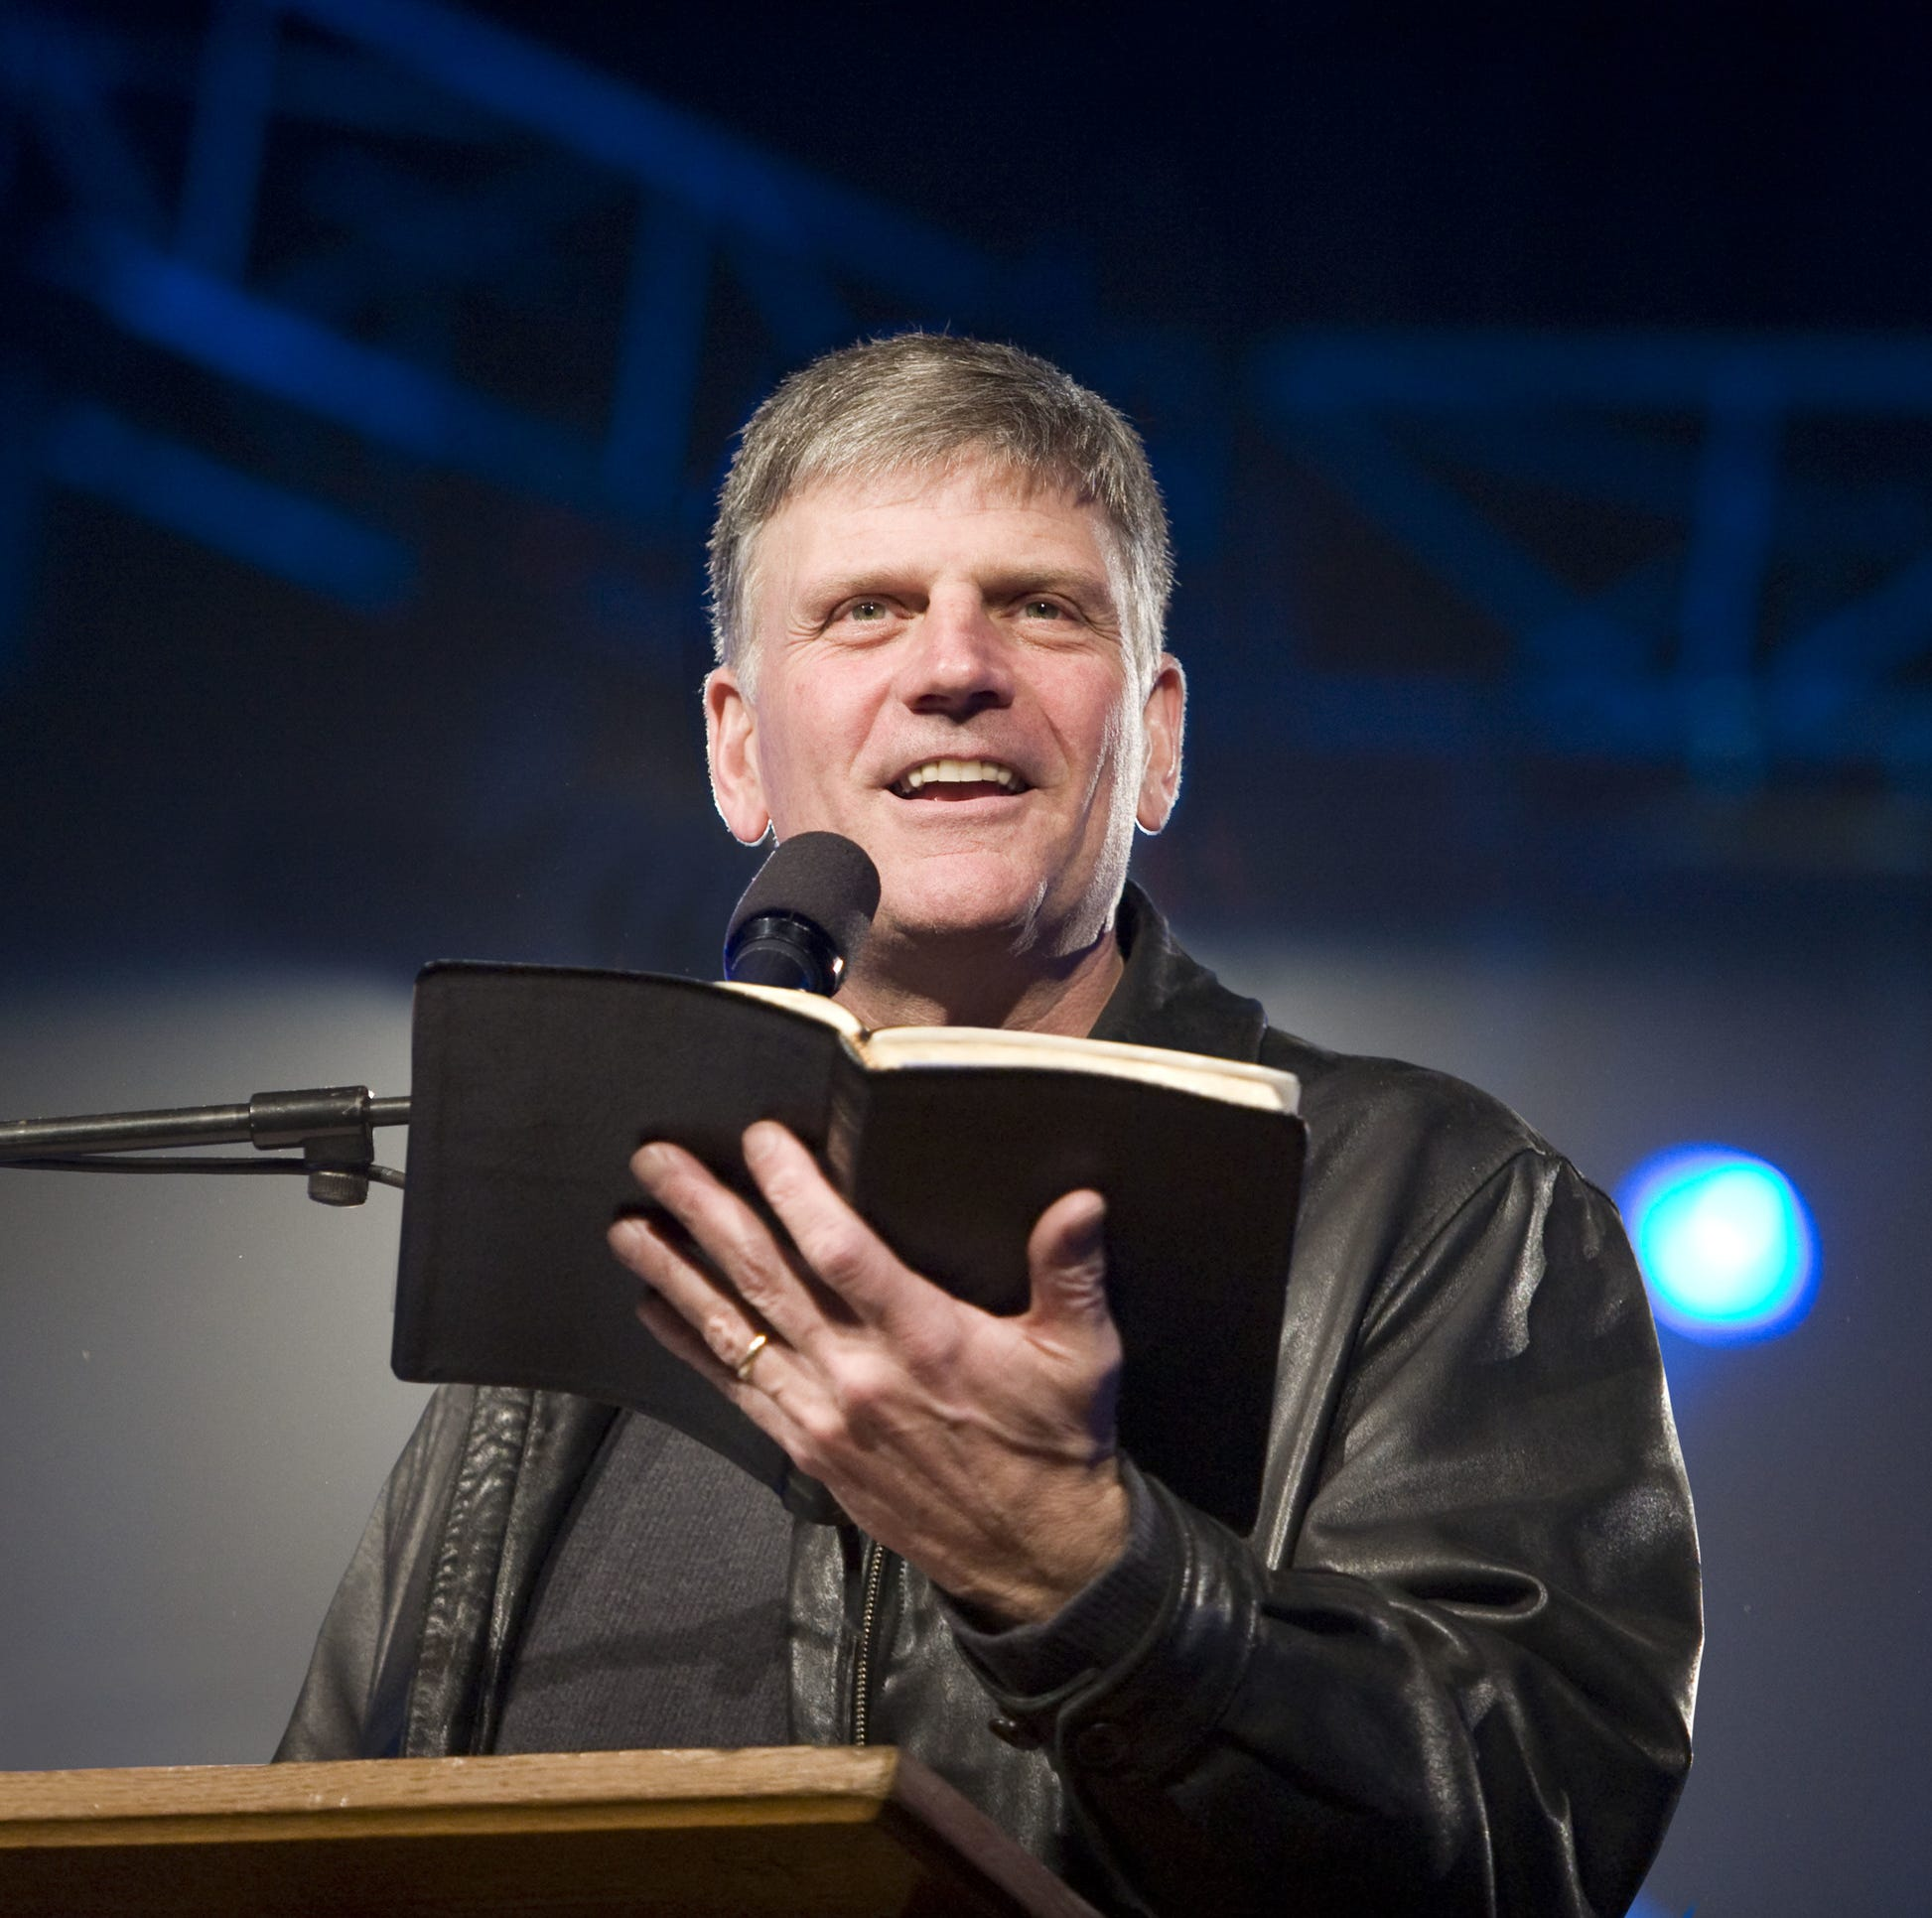 Donald Trump shill Franklin Graham says Pete Buttigieg should repent. HA!